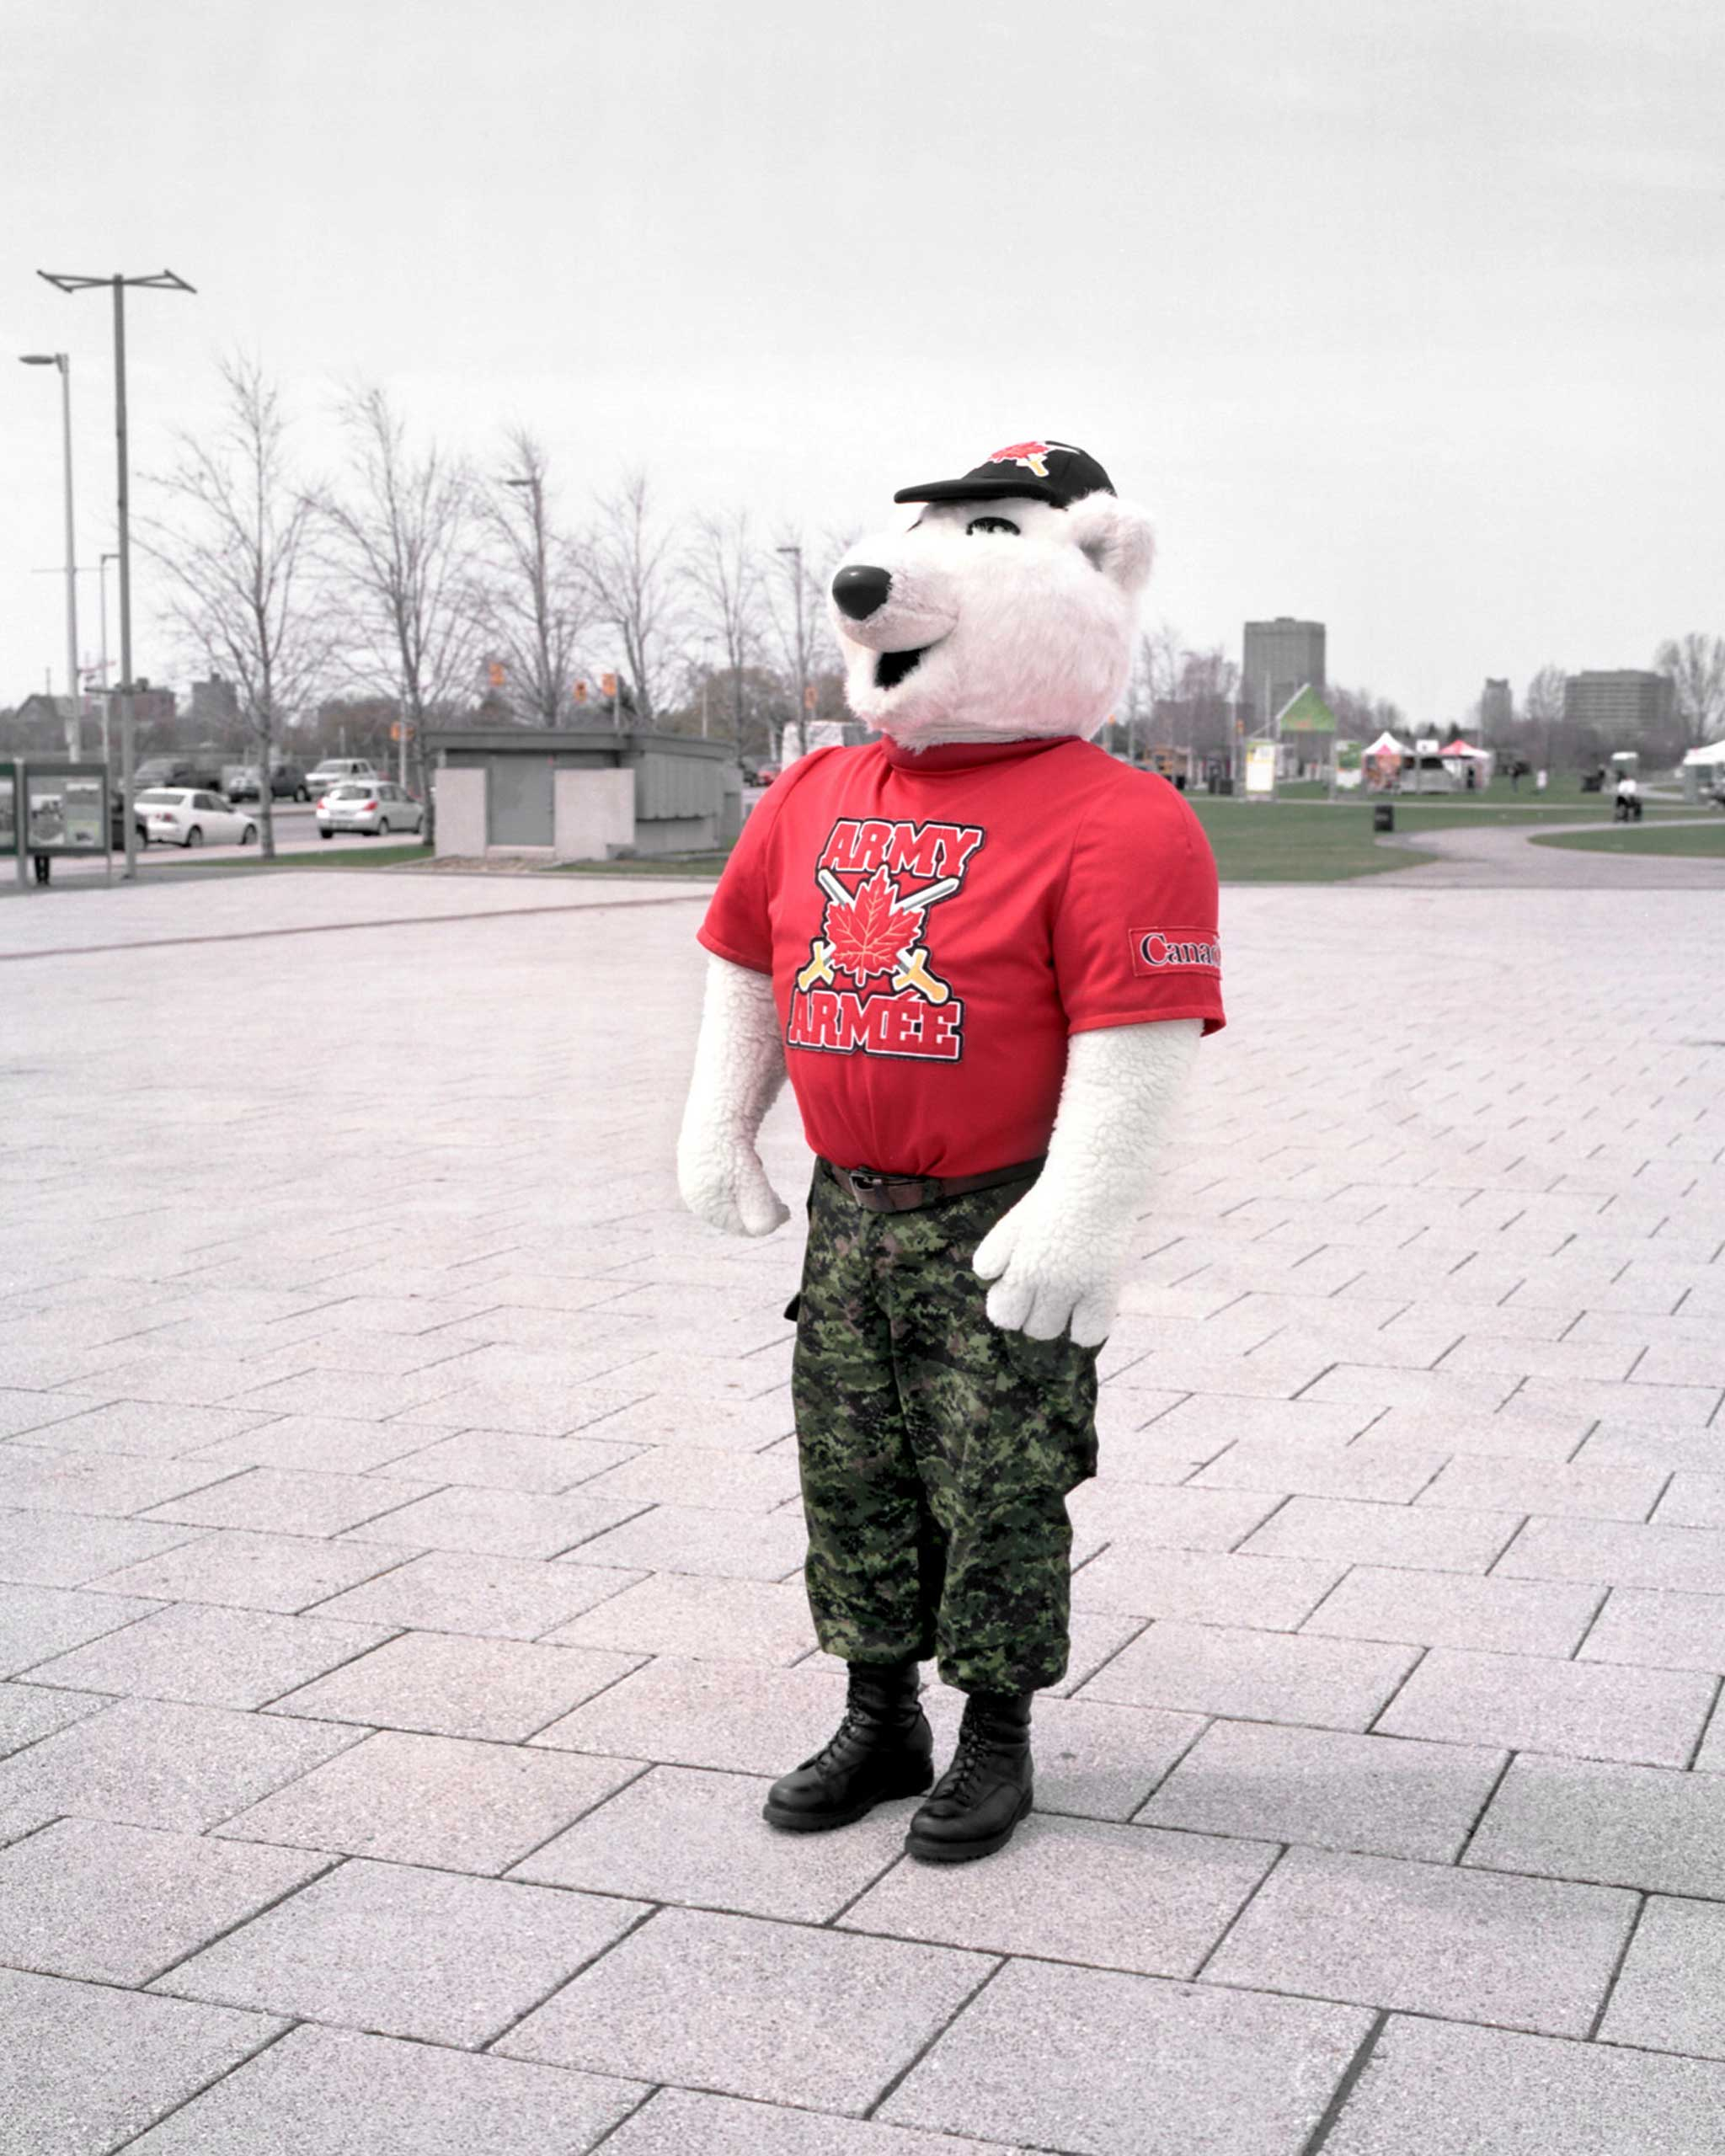 Juno, mascot of the Canadian Army